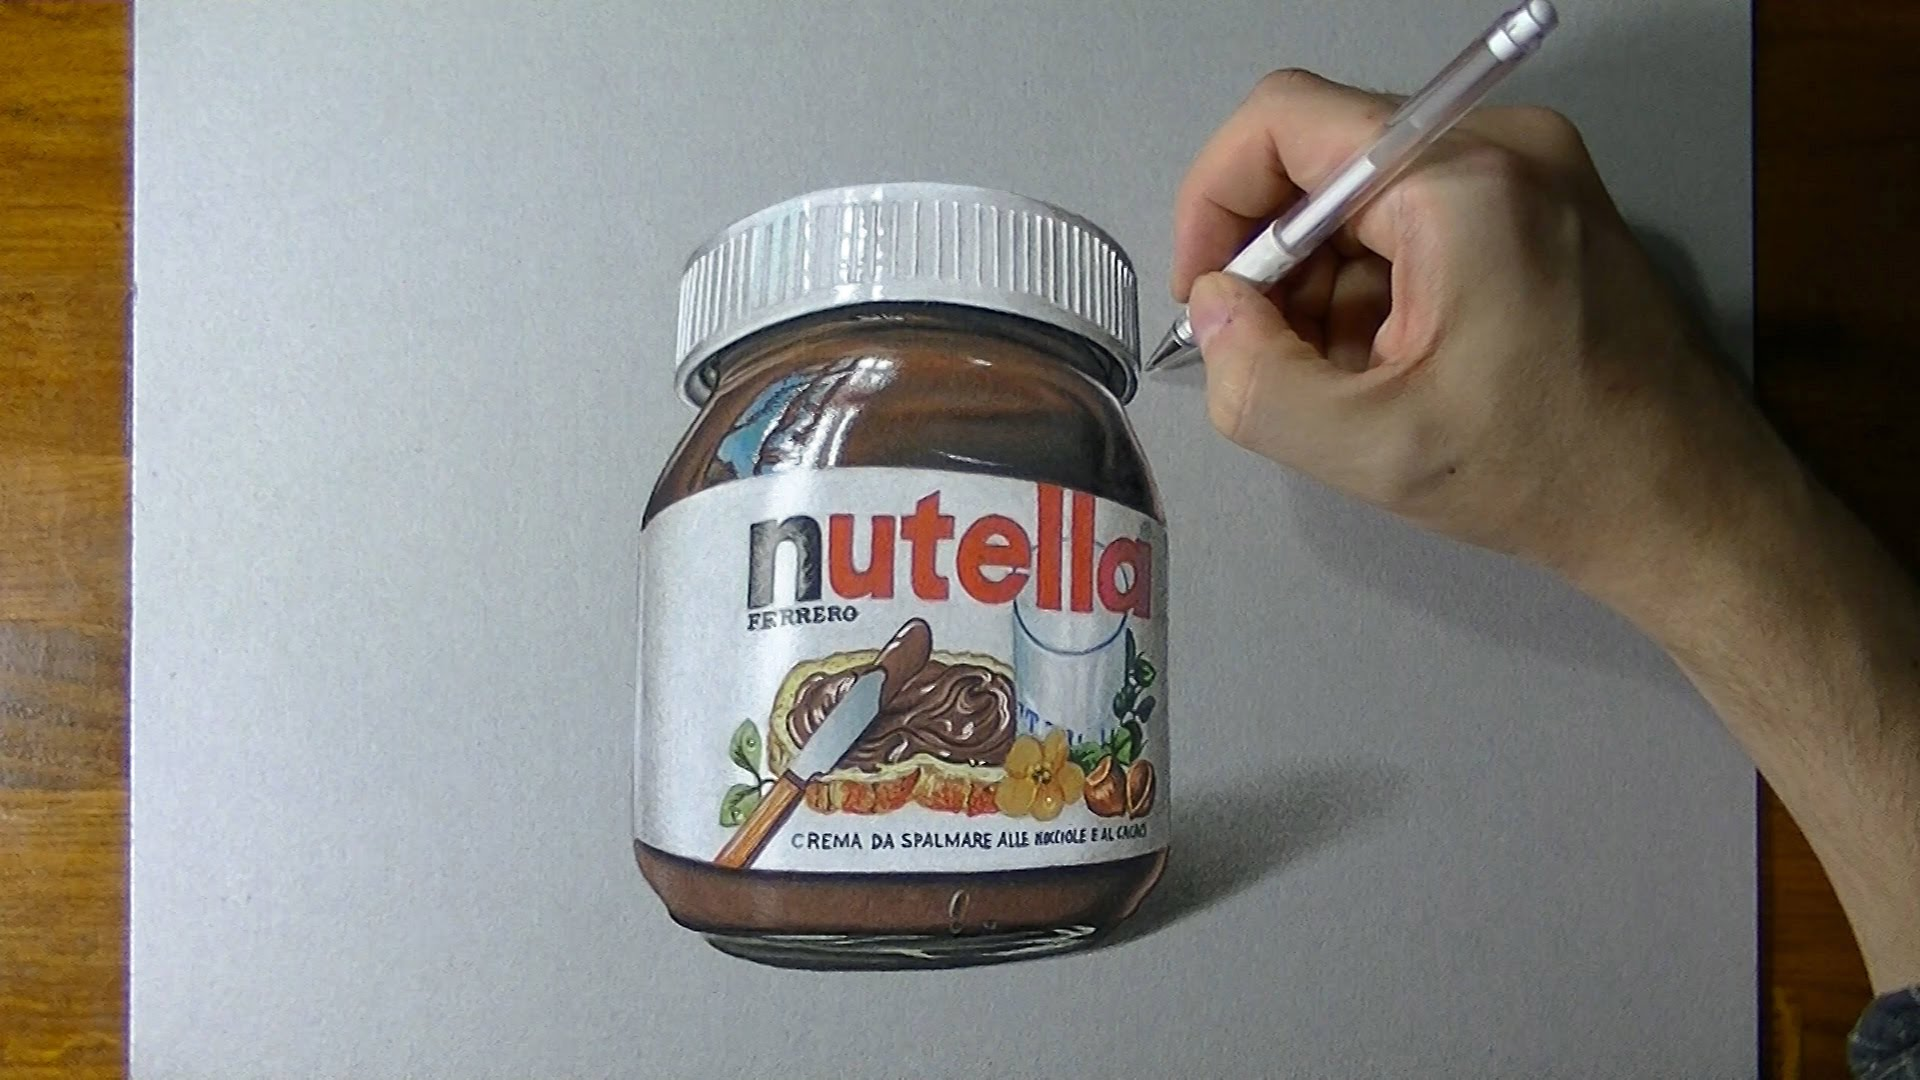 Drawn nutella #1